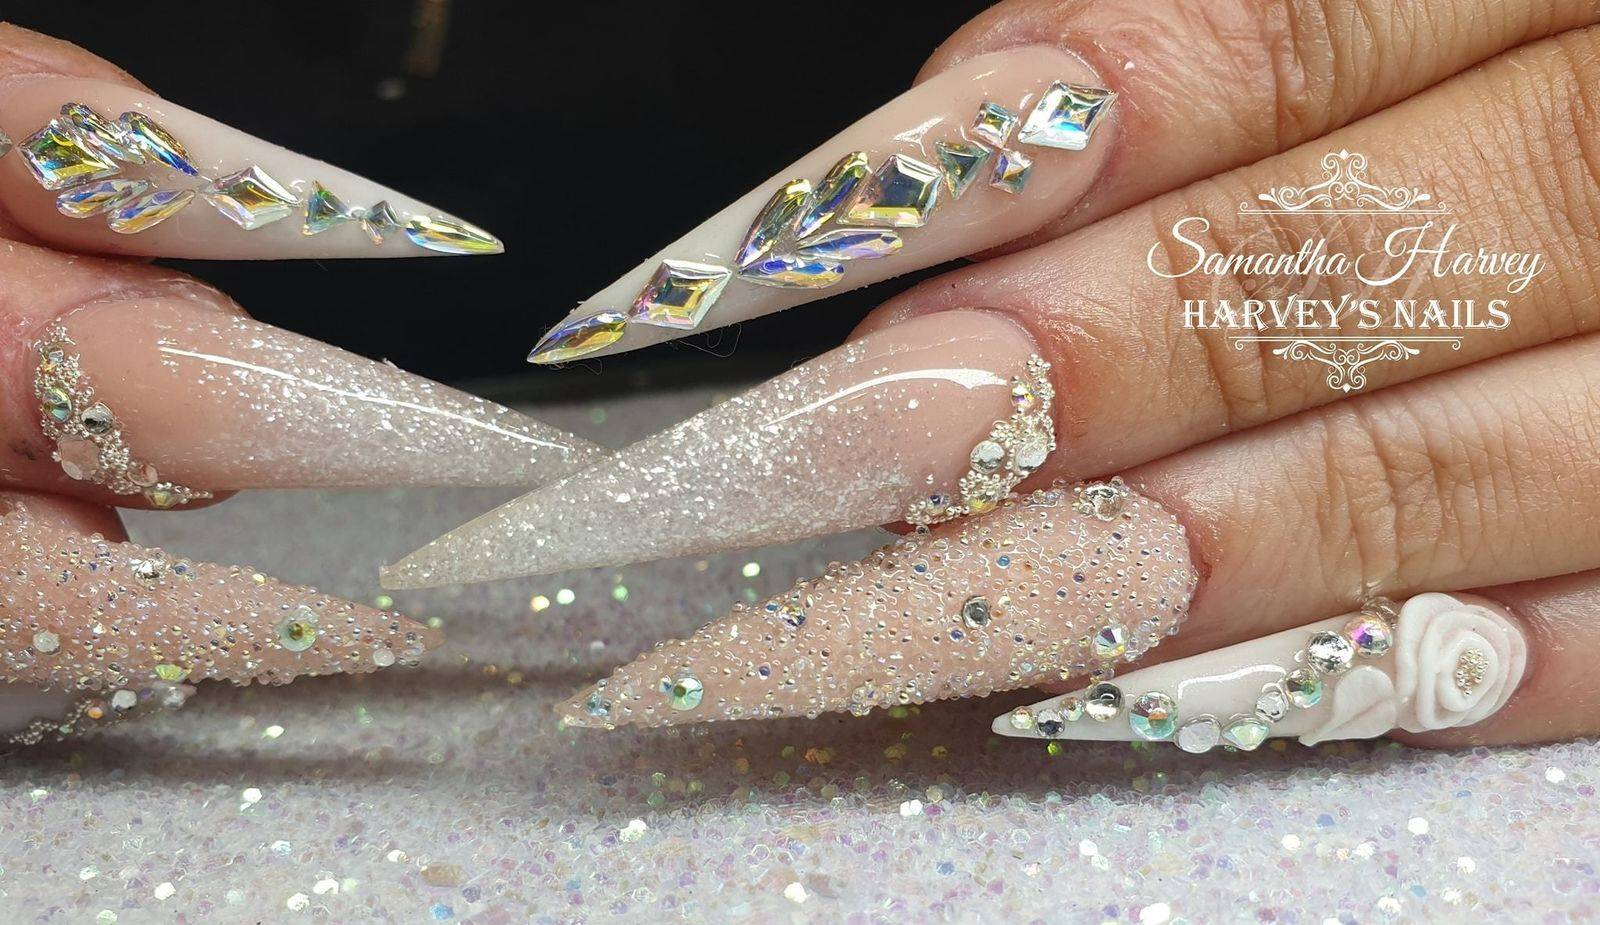 Acrylic design Stiletto nail with 3D flowers, Swarovski crystals etc